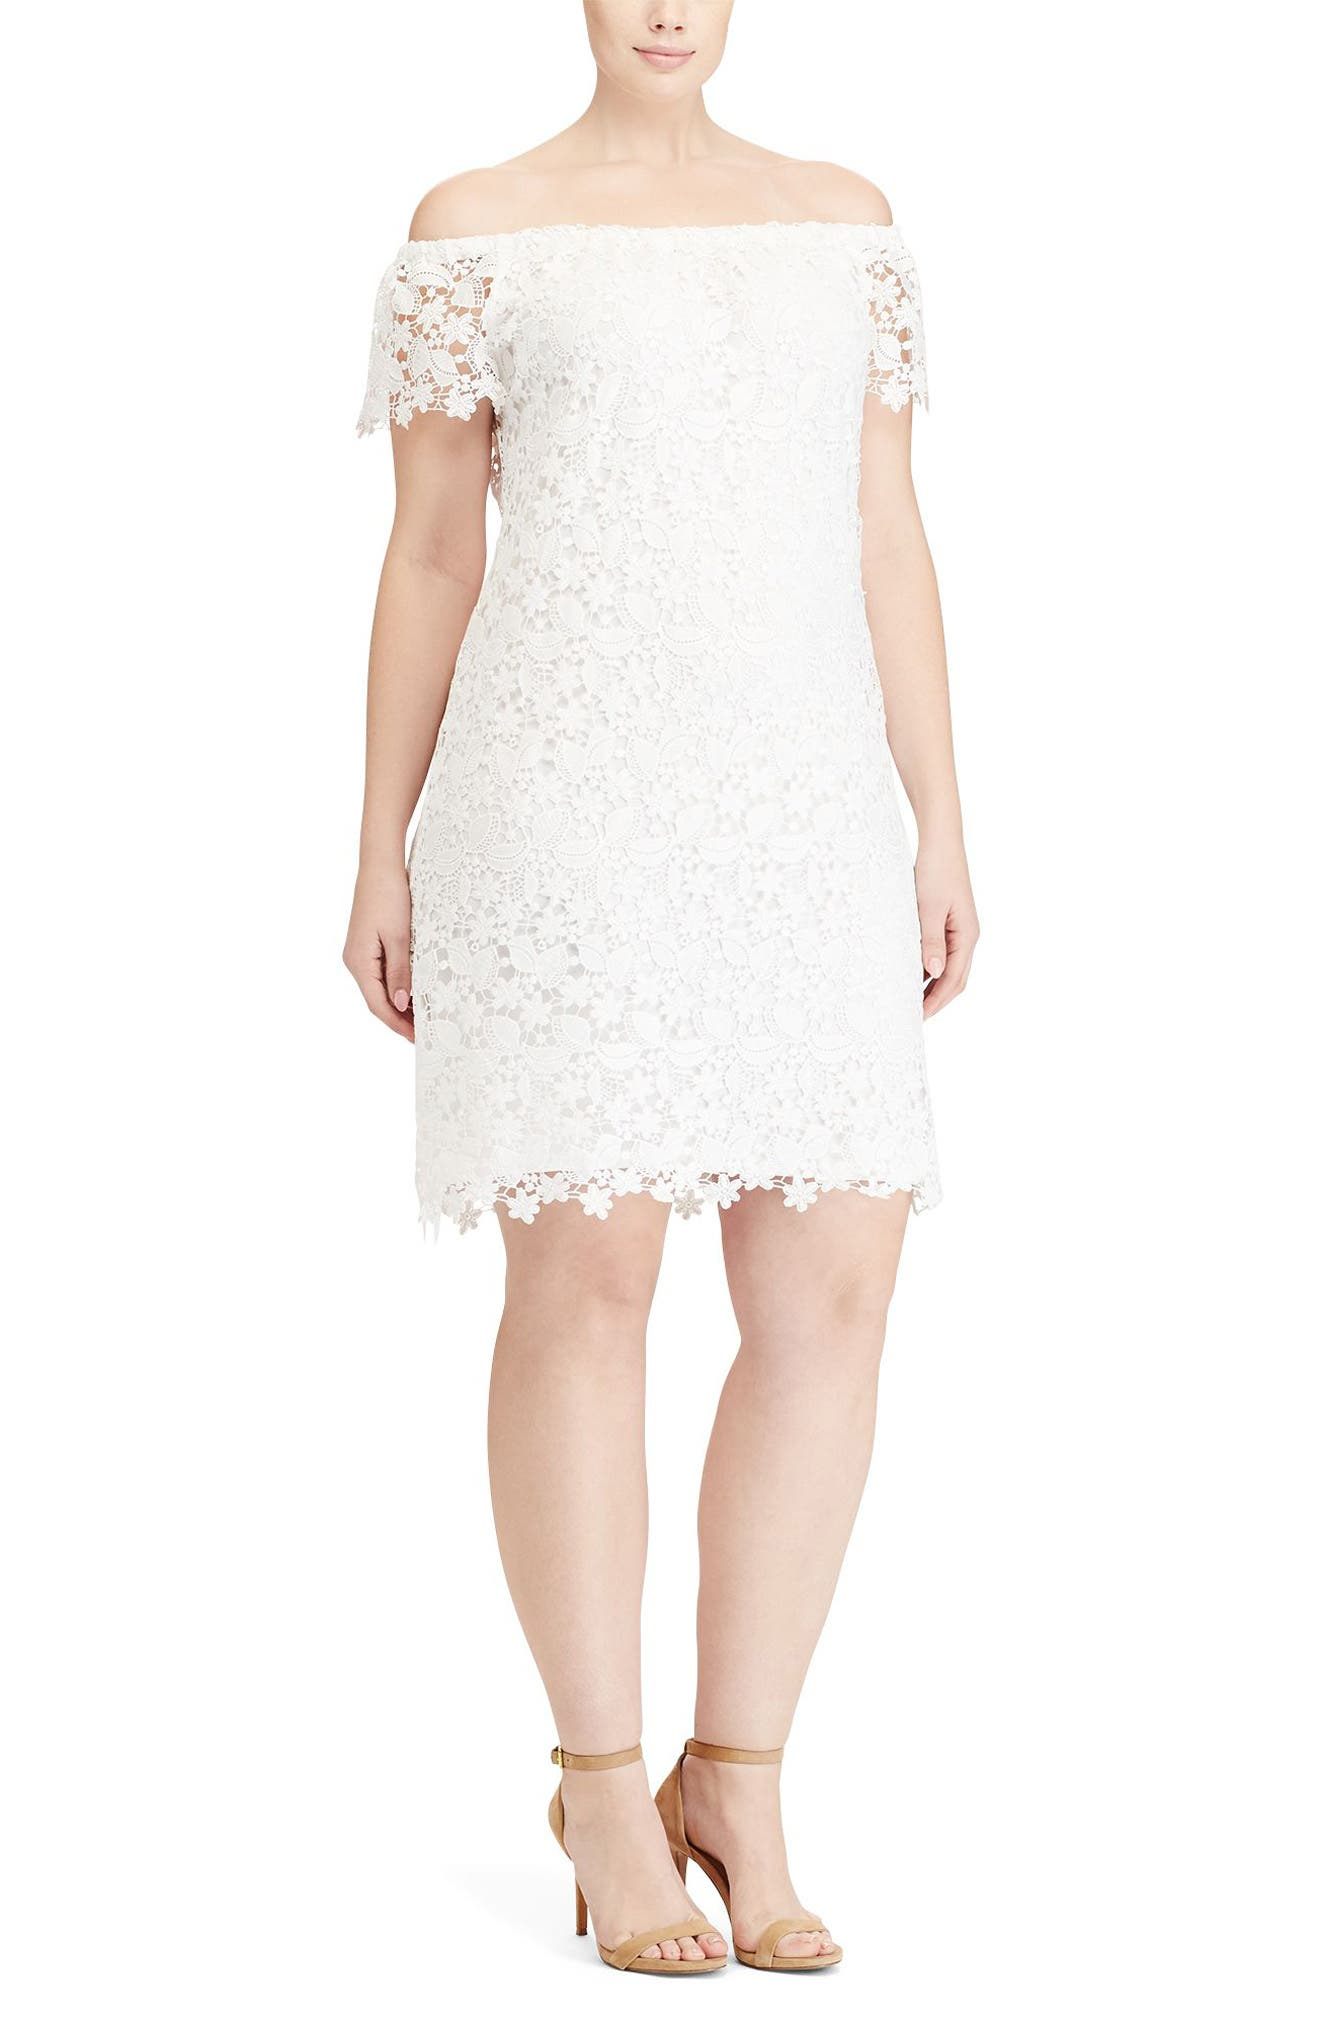 Lauren Ralph Lauren Off the Shoulder Lace Dress (Plus Size)